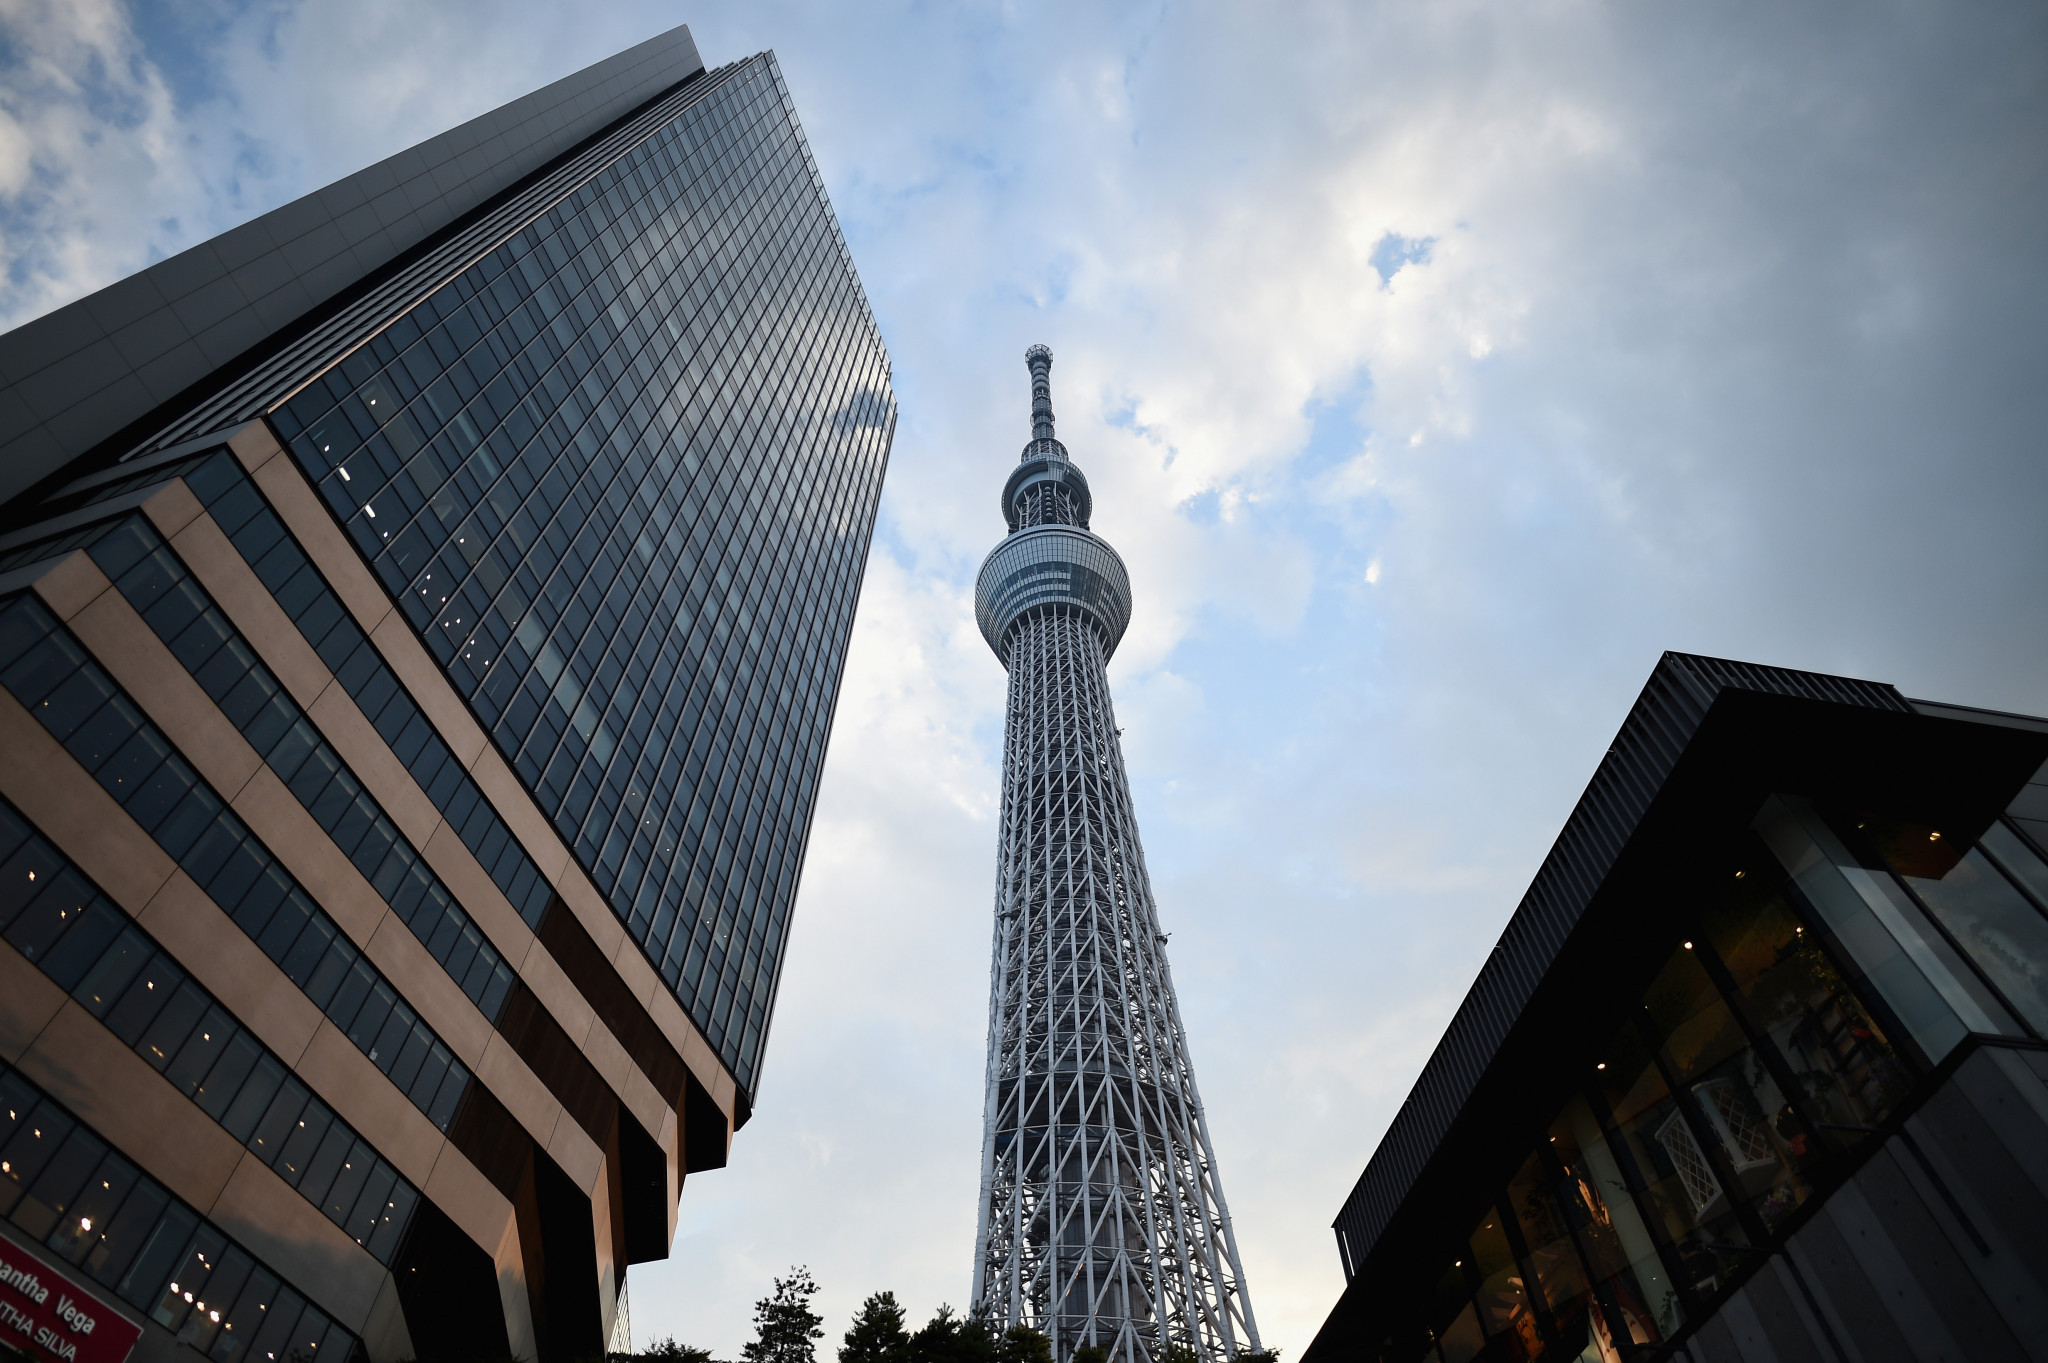 Tokyo 2020 announces sponsorship deal with Tokyo Skytree